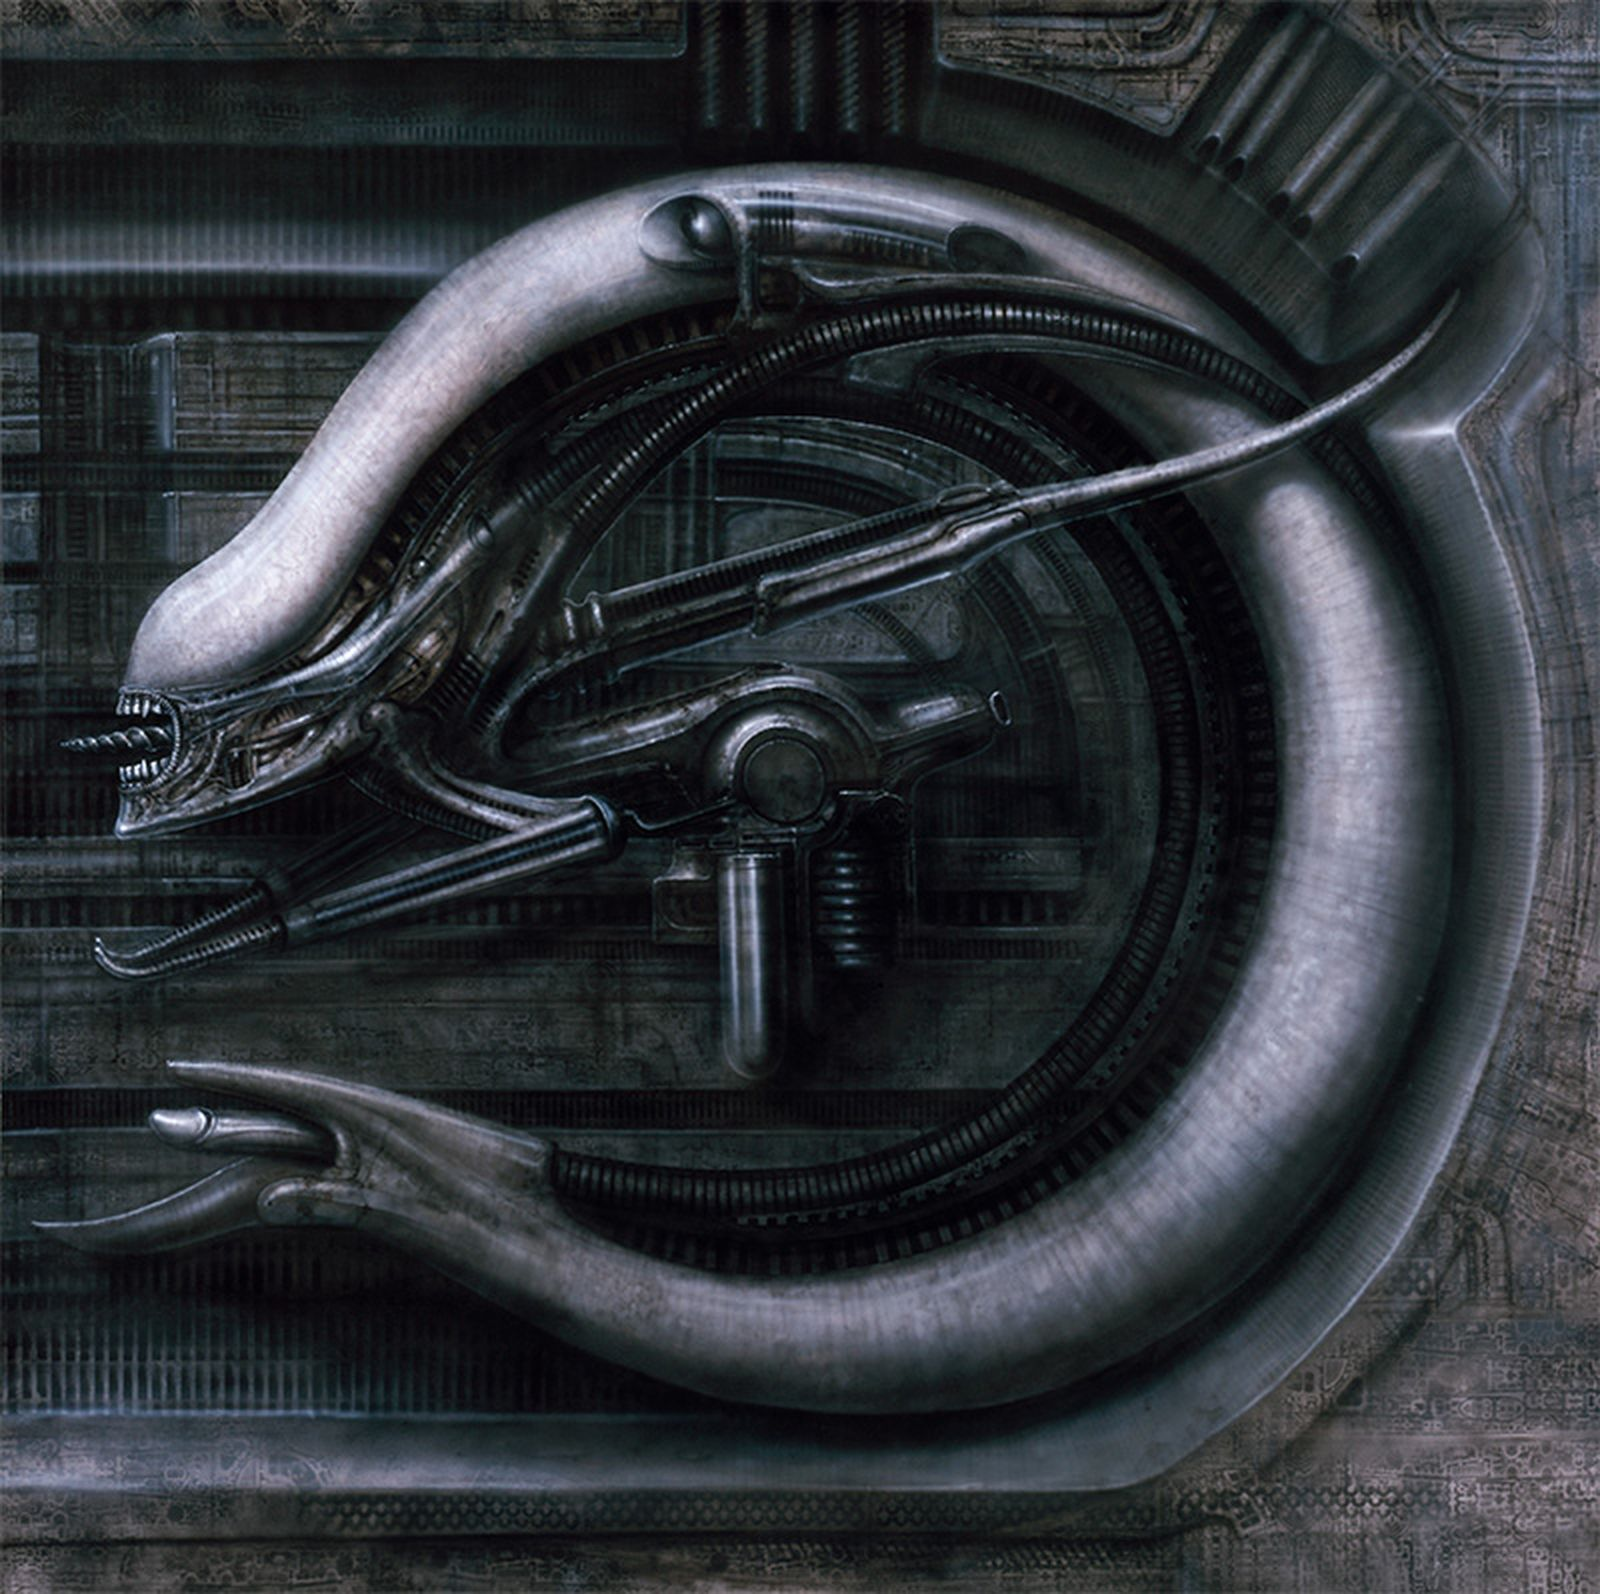 HR Giger, Alienmonster V, 1978